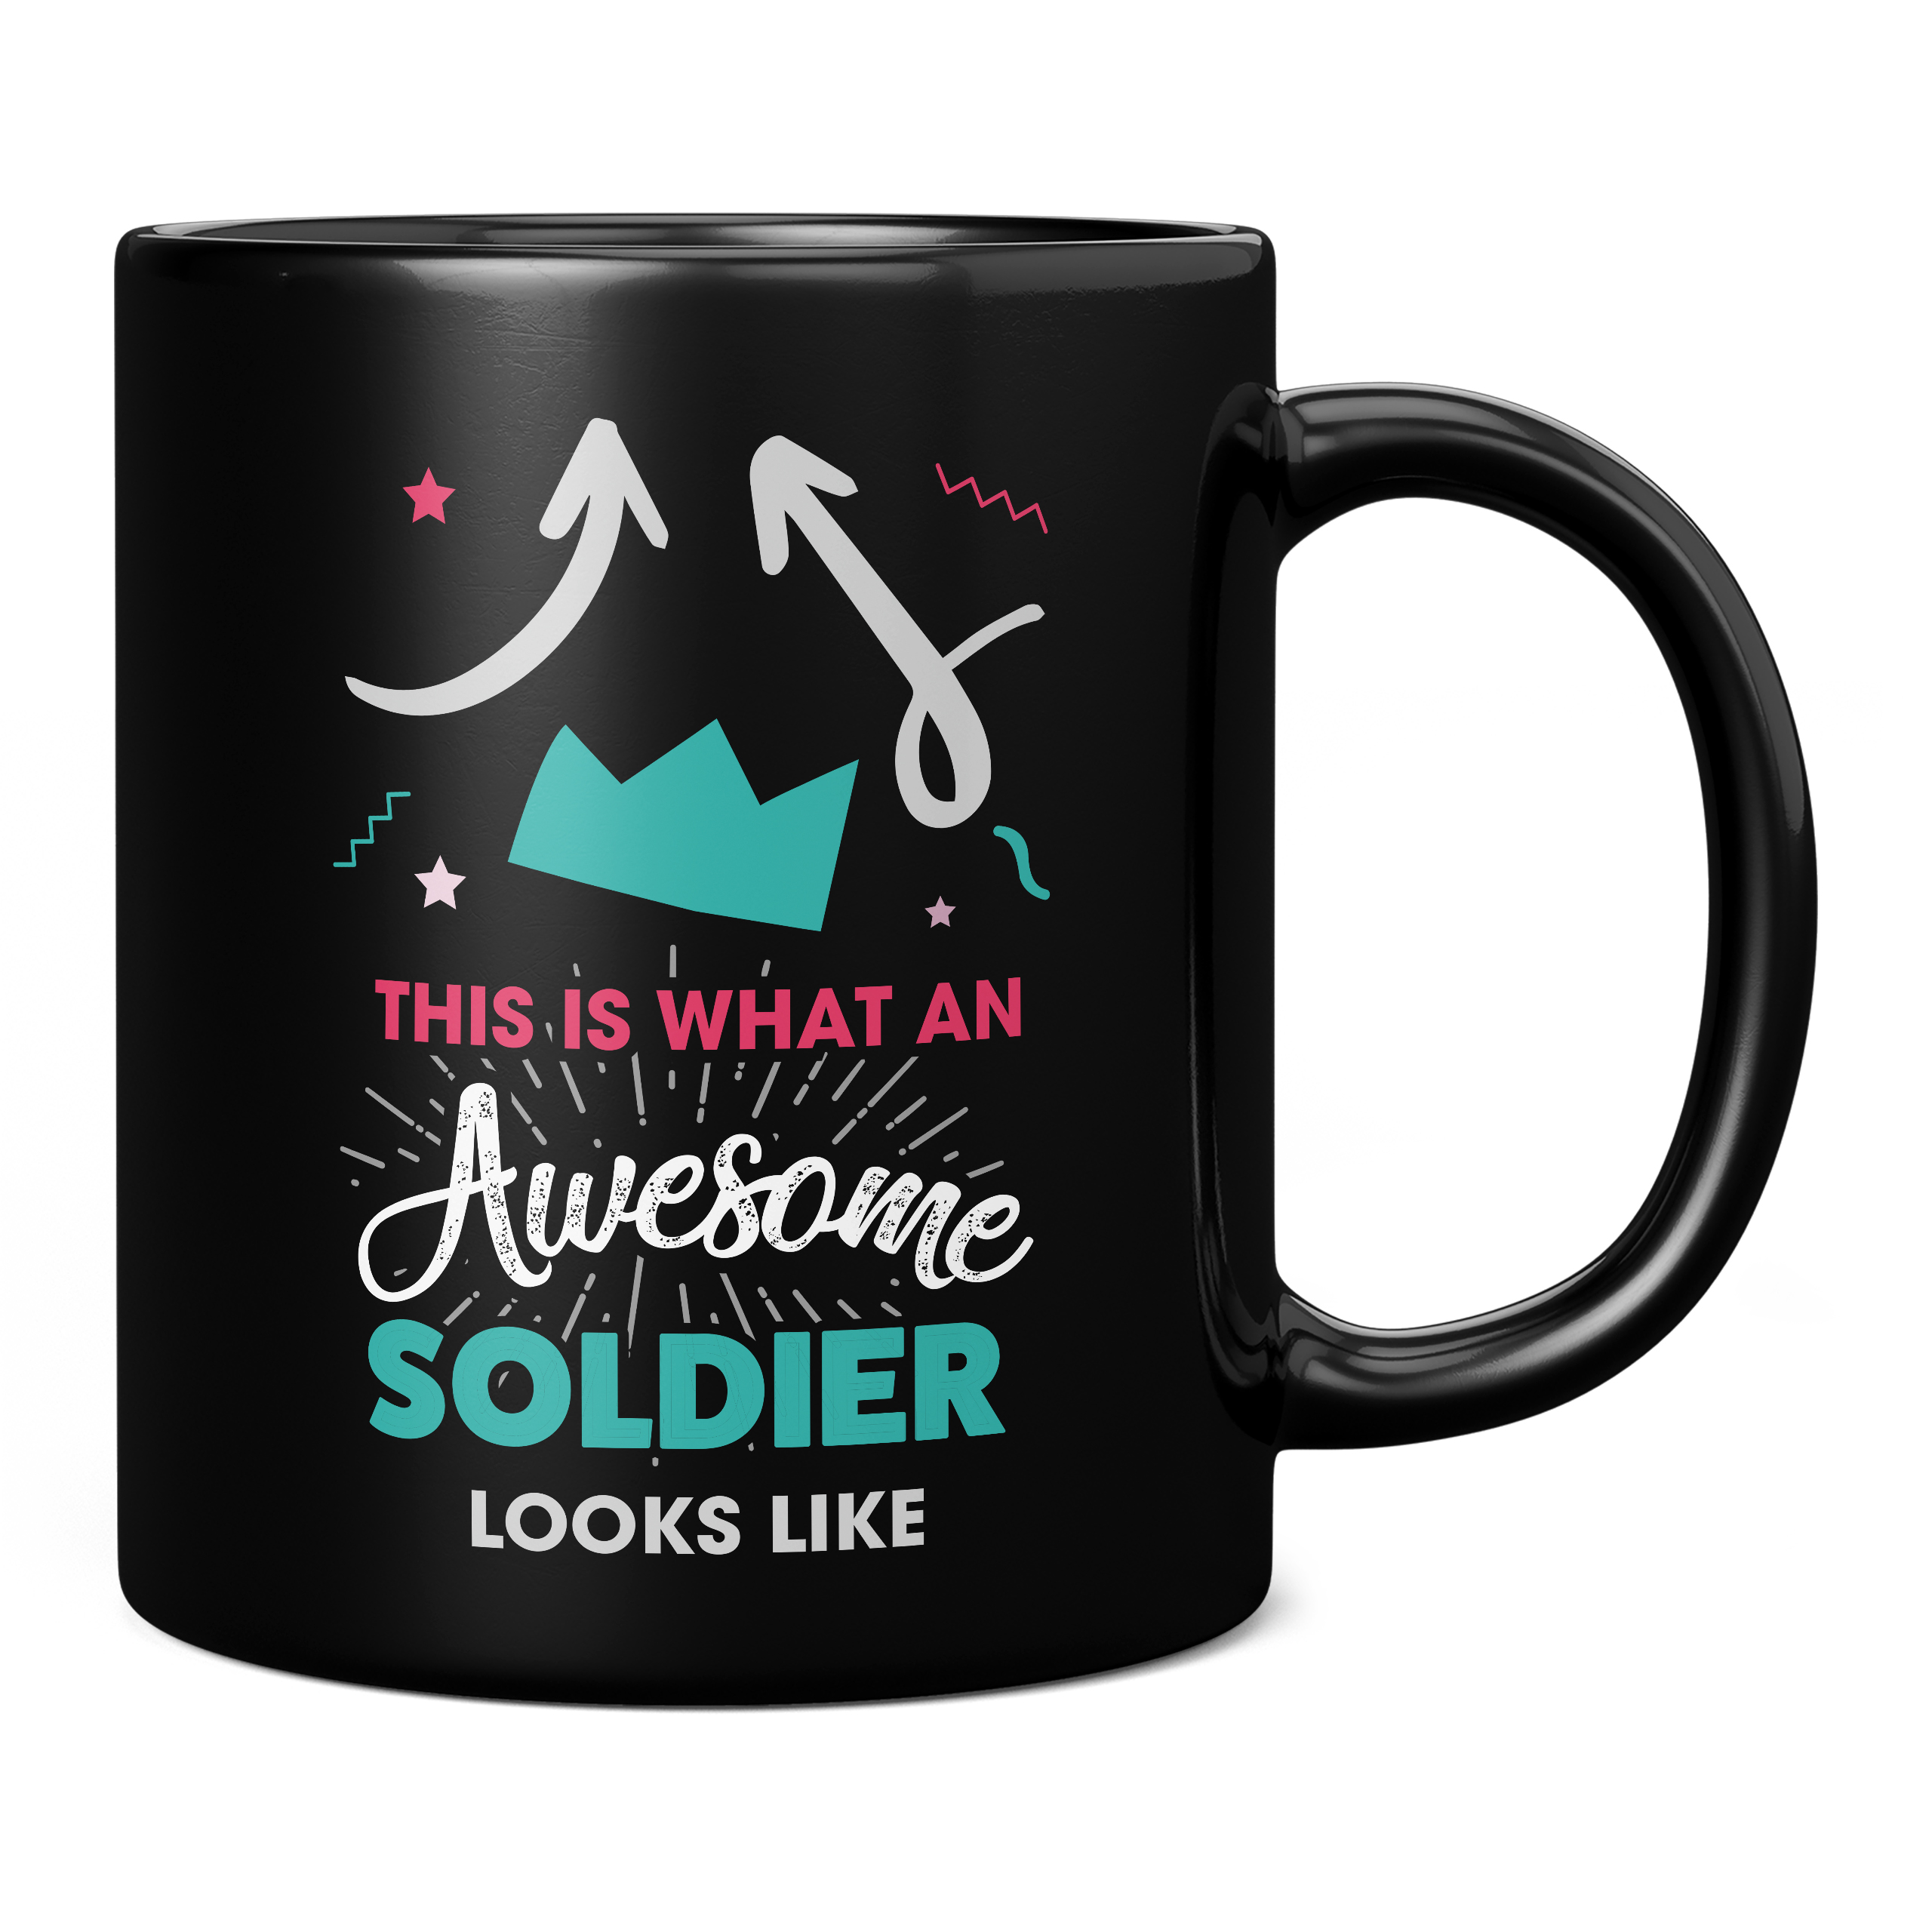 THIS IS WHAT AN AWESOME SOLDIER LOOKS LIKE 11OZ NOVELTY MUG